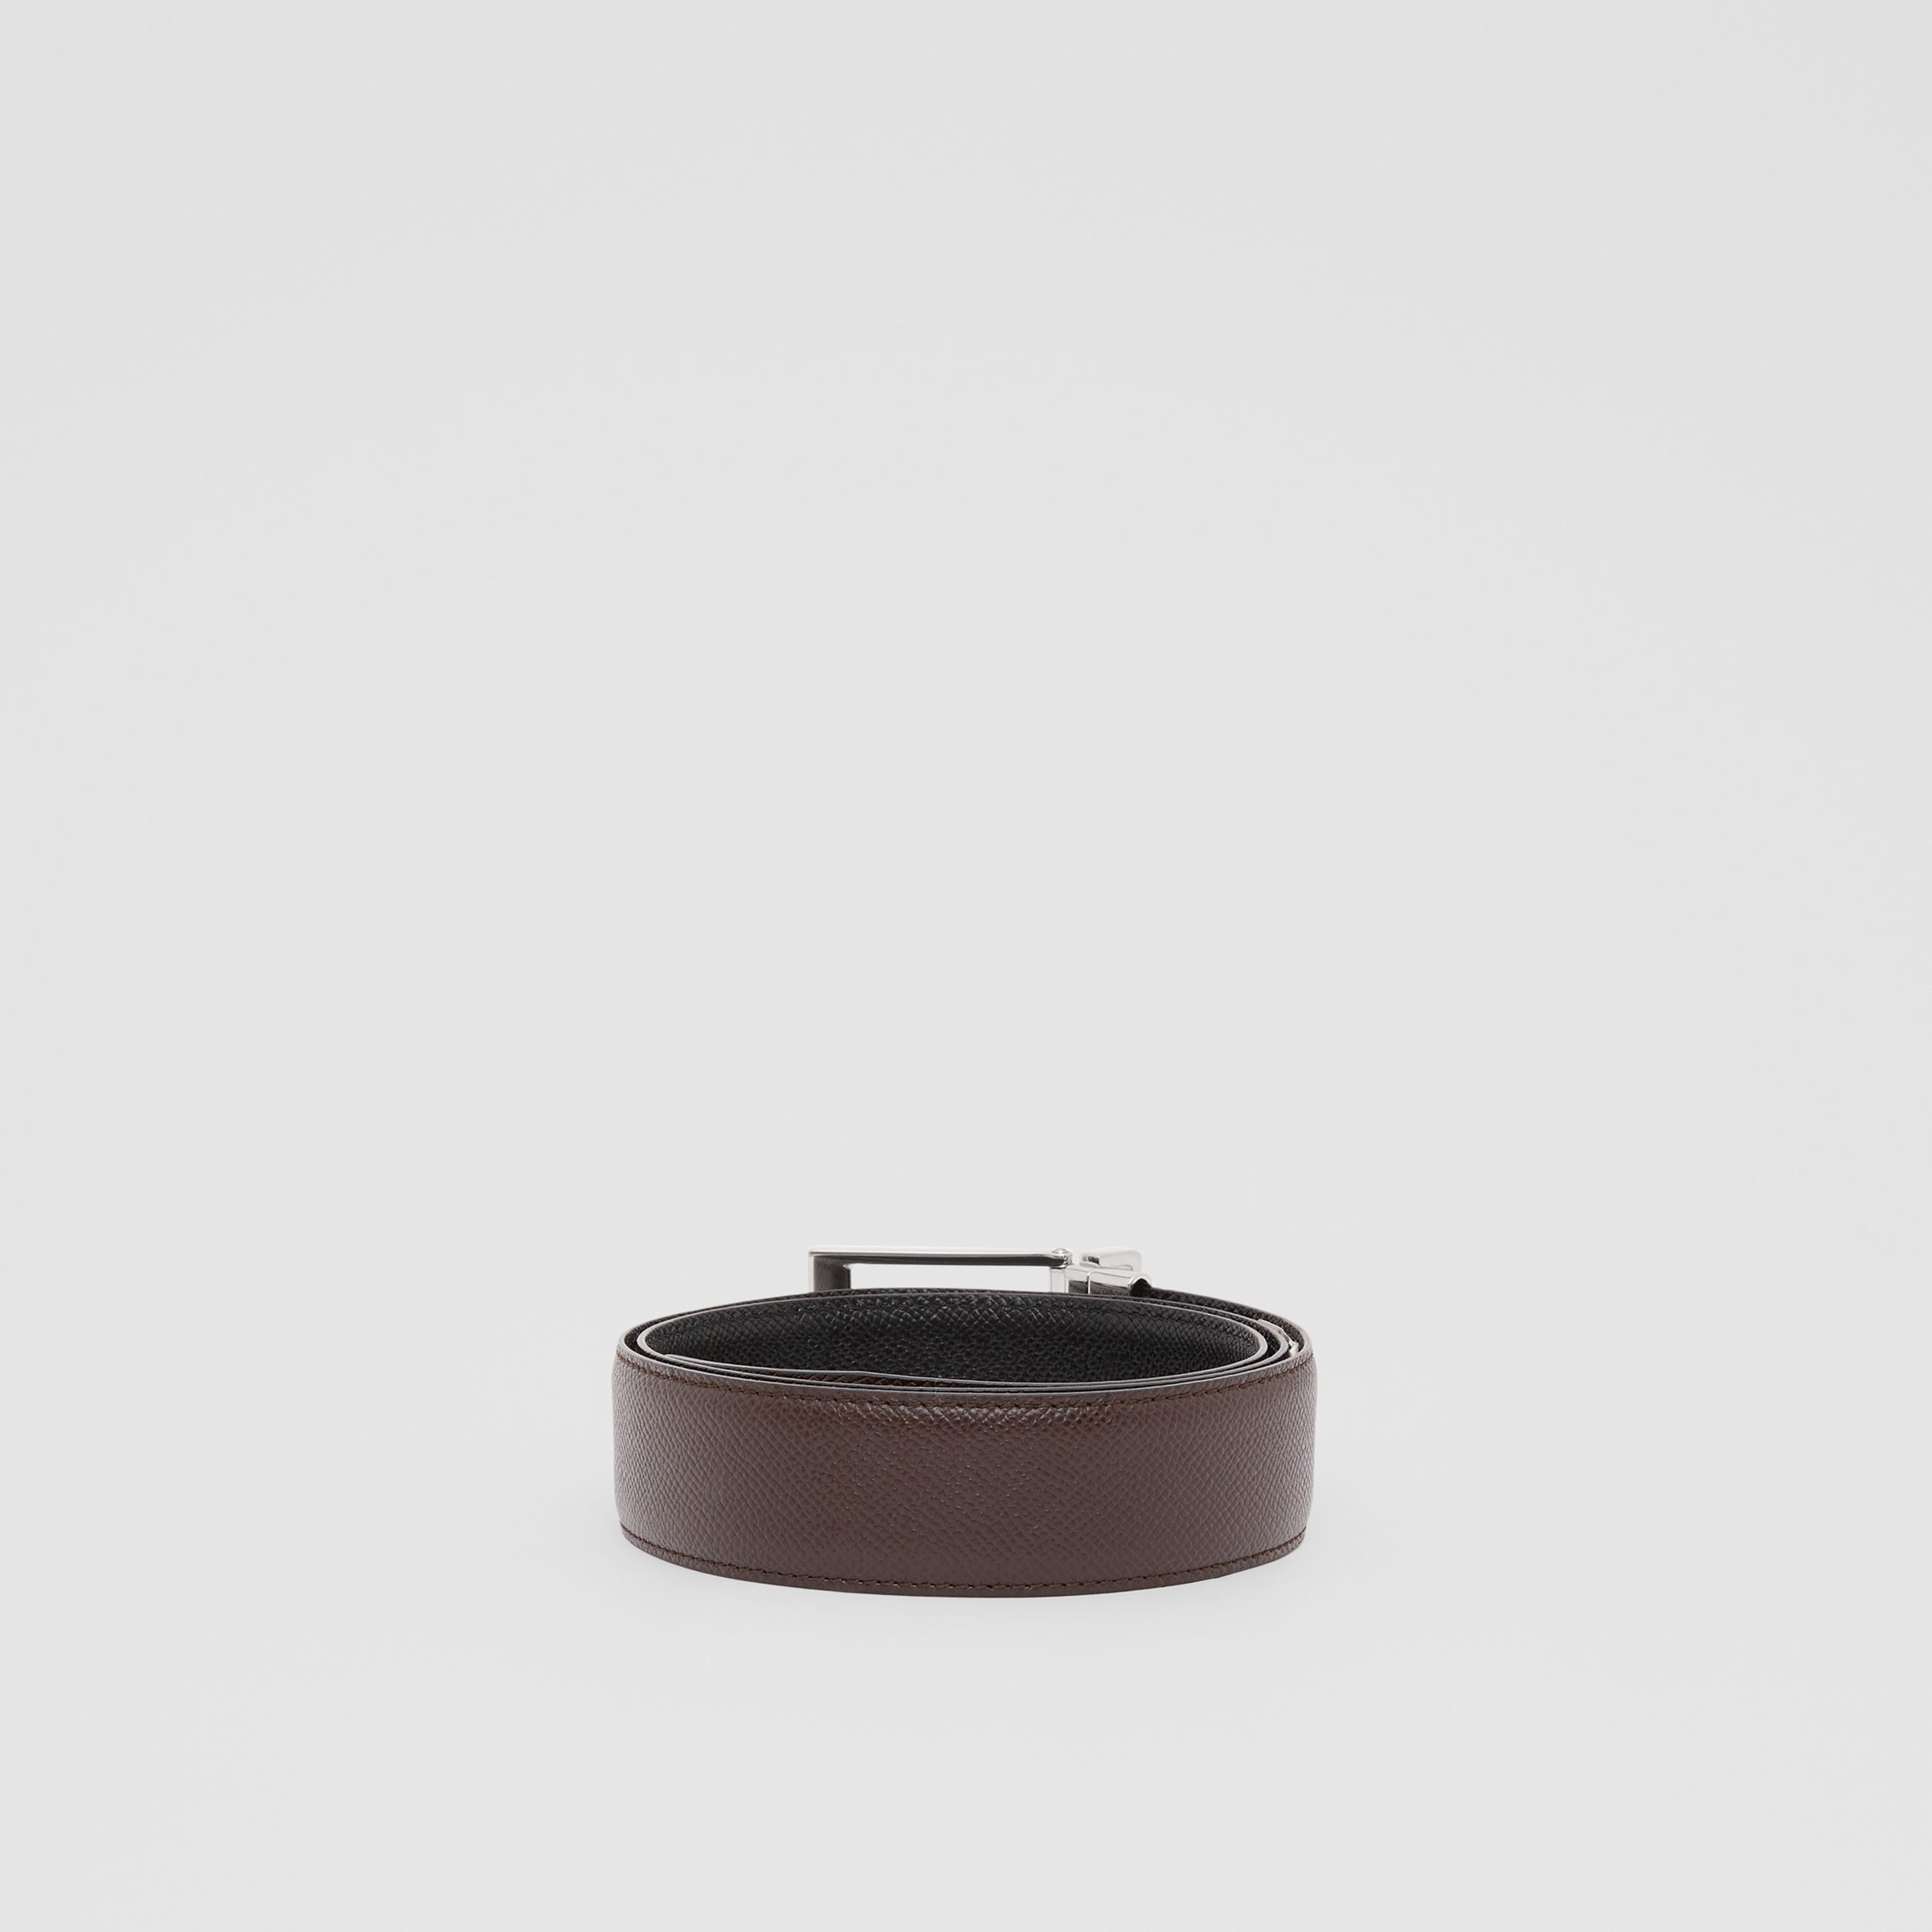 Reversible Grainy Leather Belt in Black/chocolate - Men | Burberry - 4